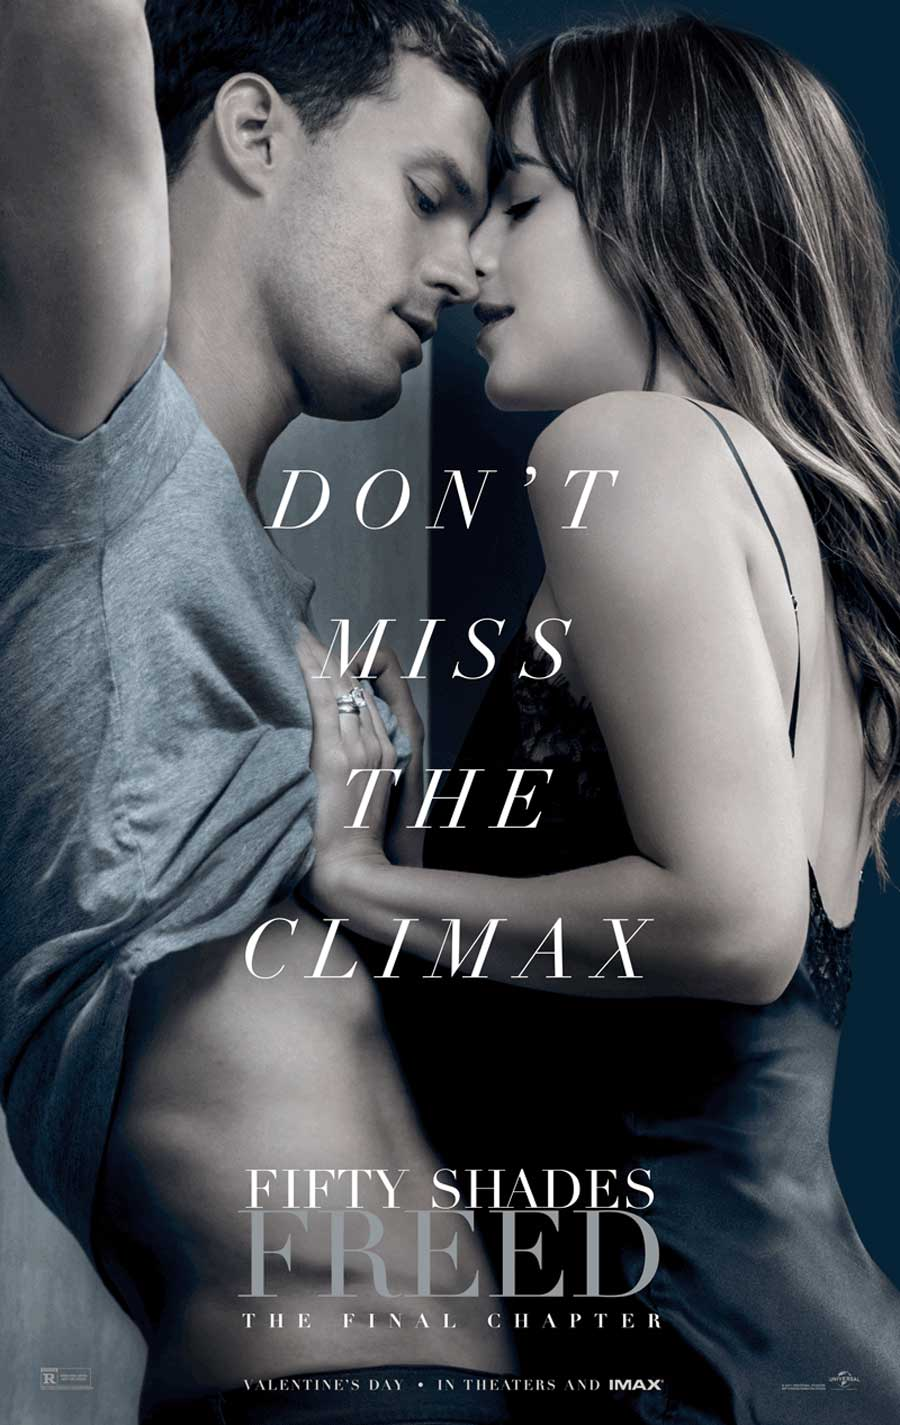 Poster for Fifty Shades Freed